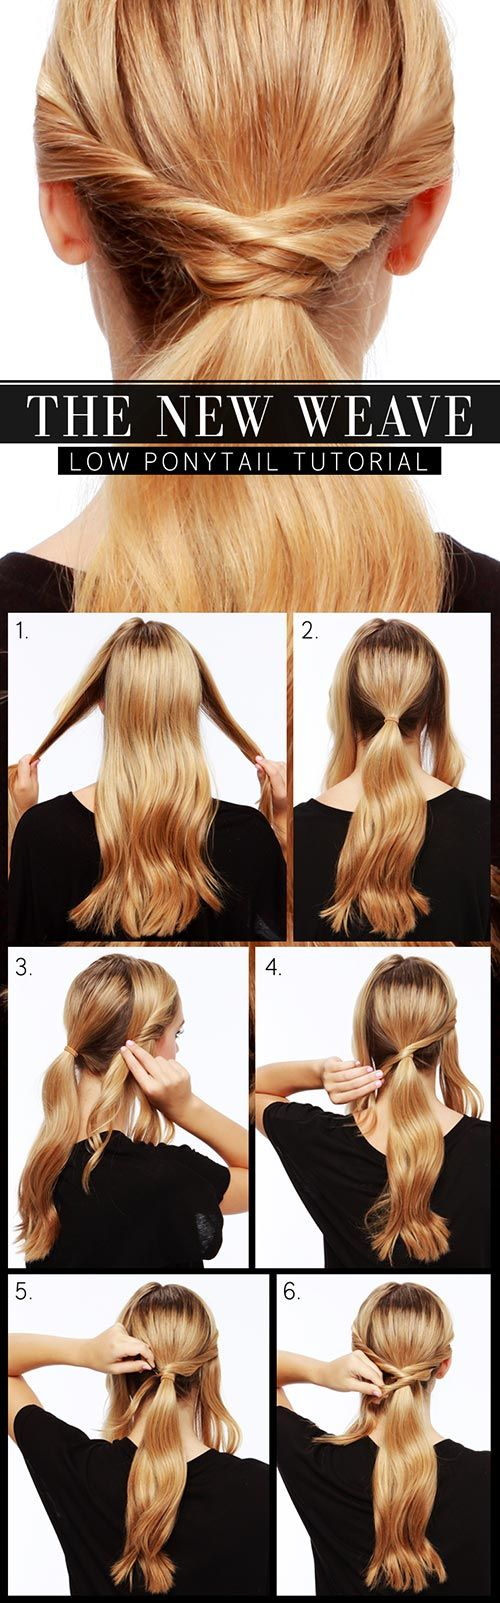 Simple hairstyle tutorials for every occasion hairstyletutorials